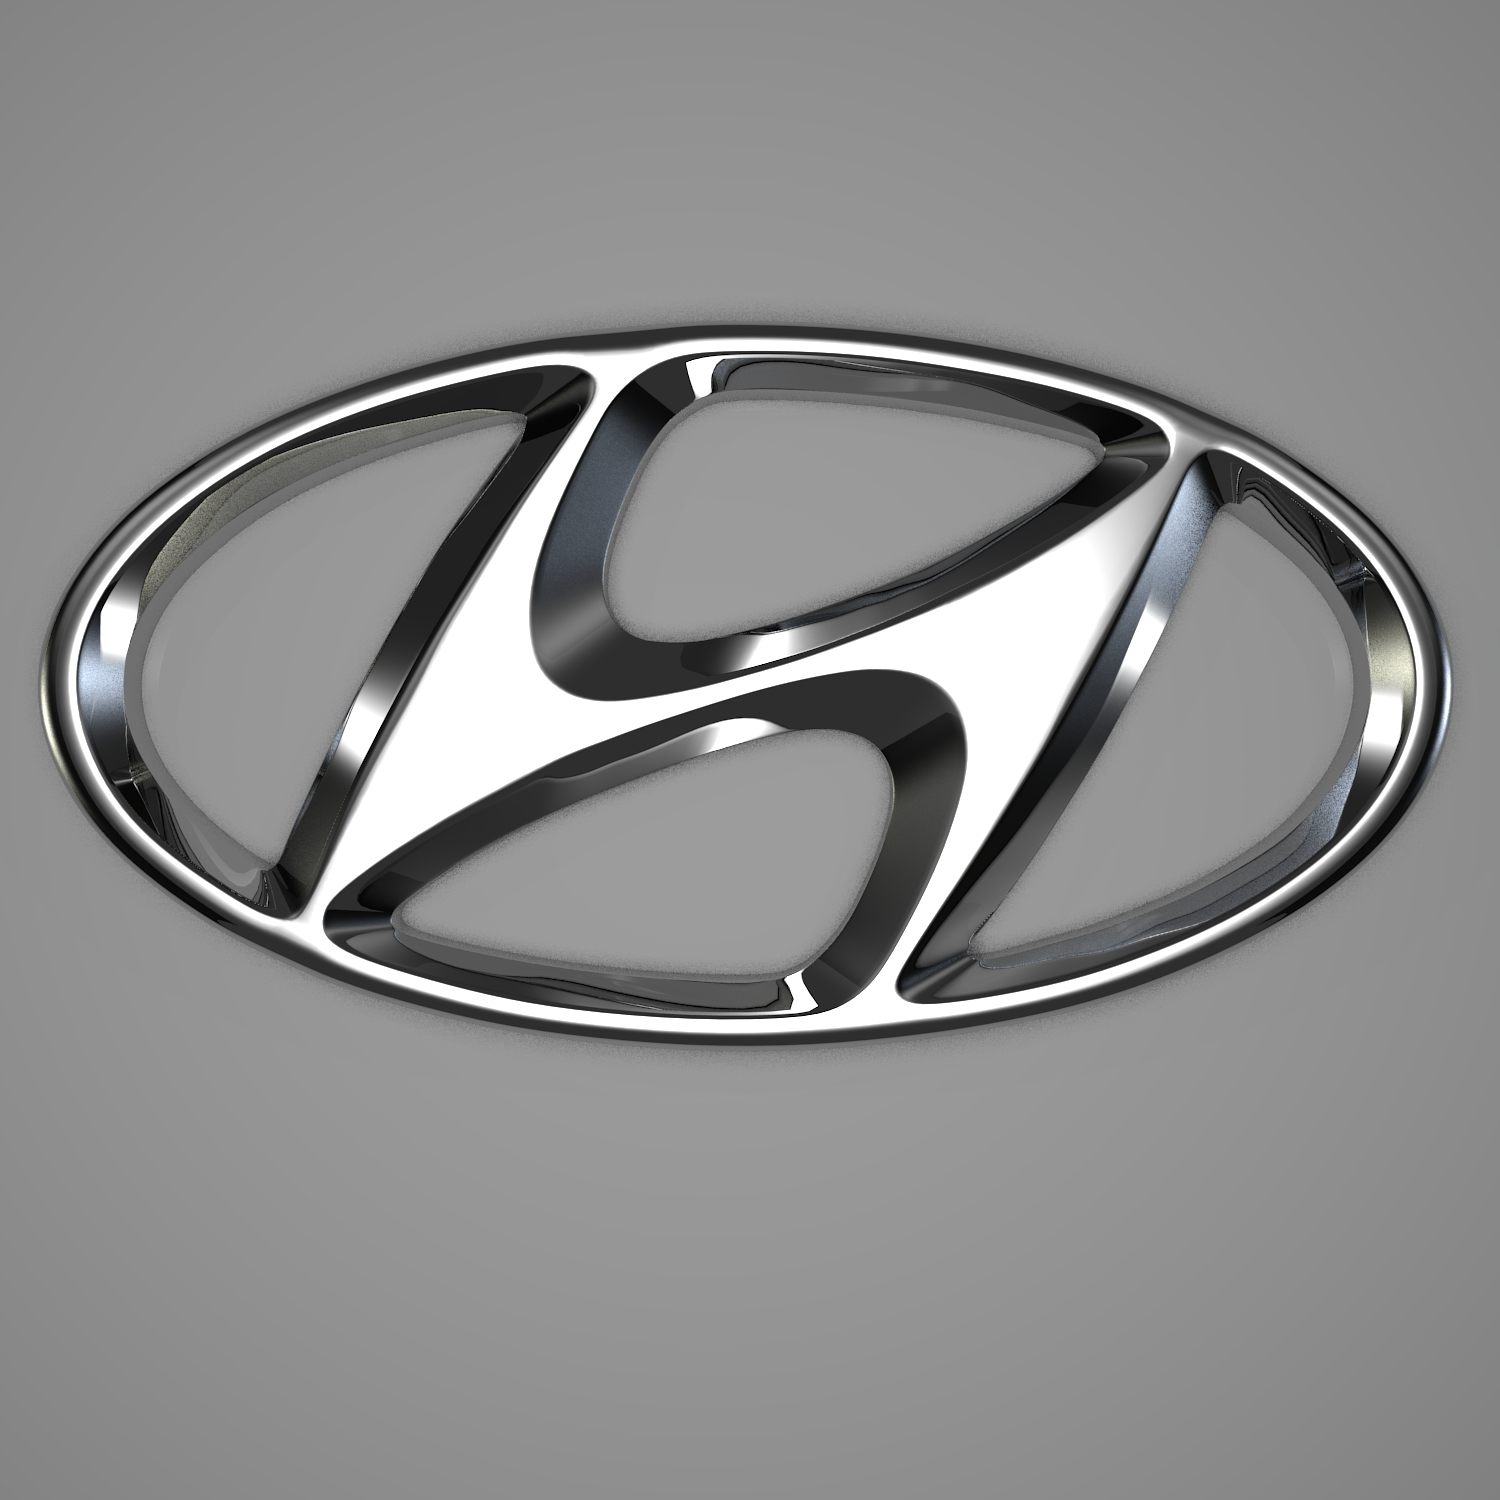 Hyundai Logo Huyndai Car Symbol Meaning And History